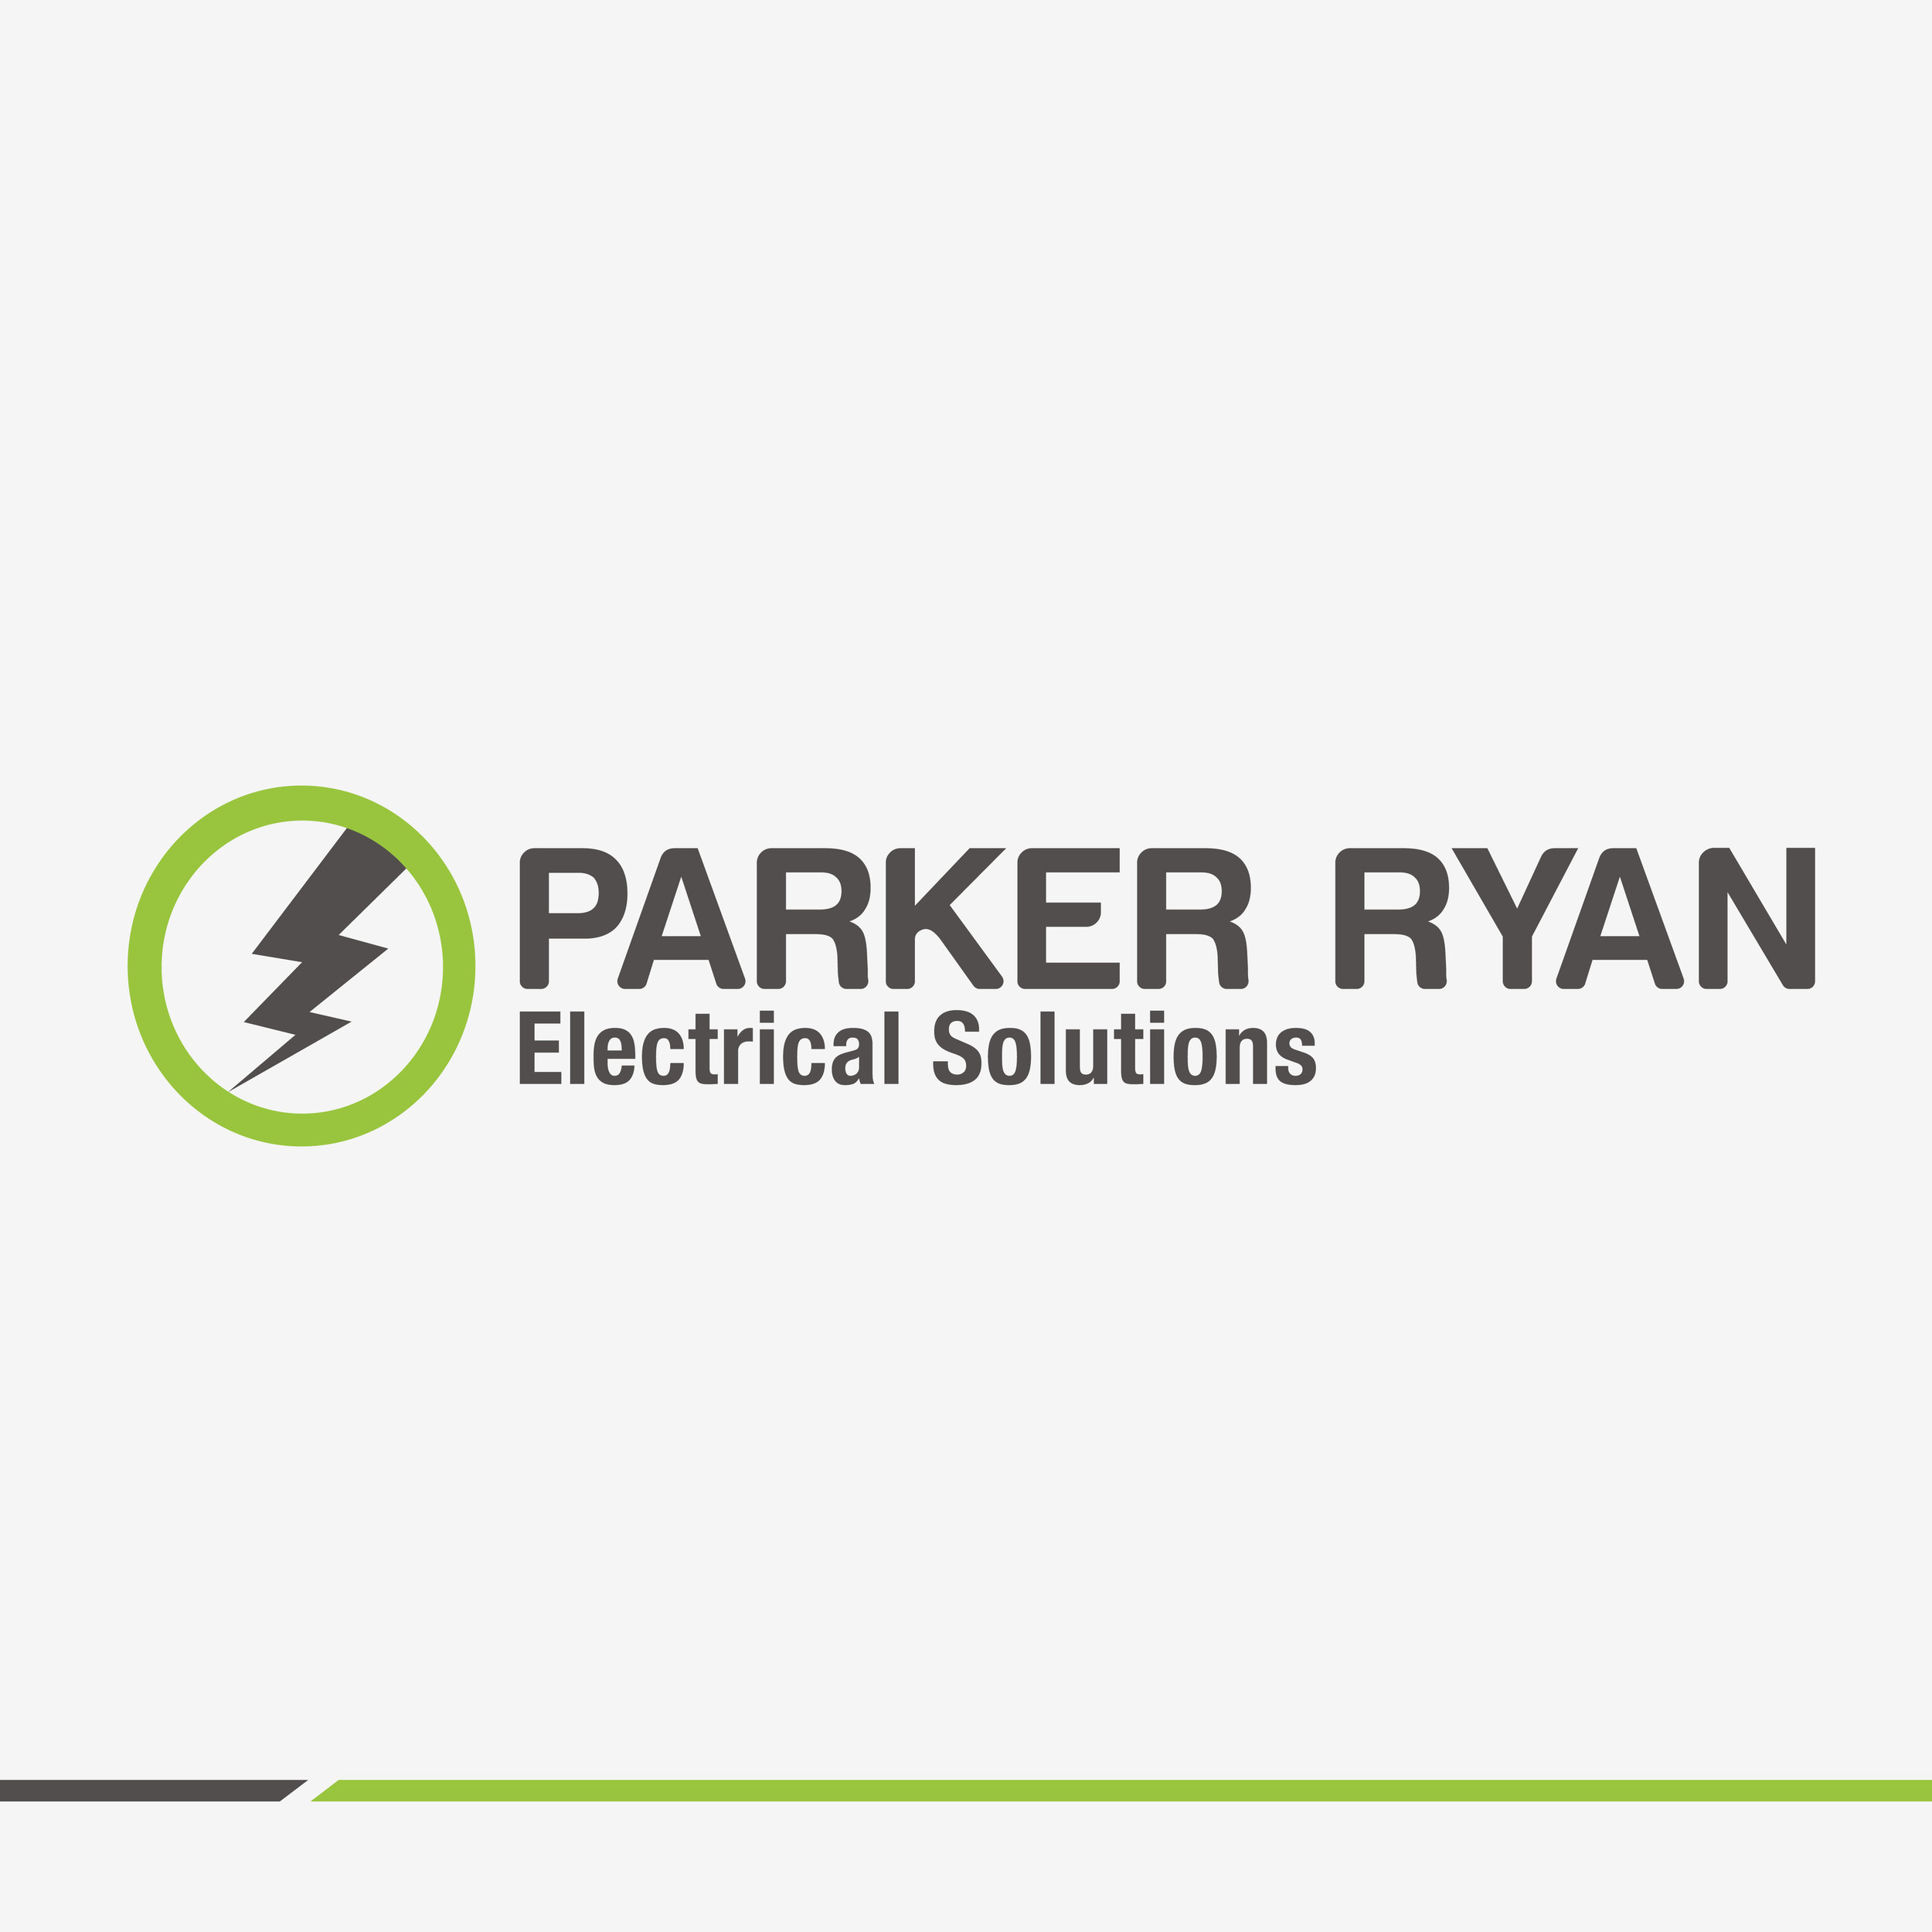 Parker Ryan Electrical Solutions.jpg